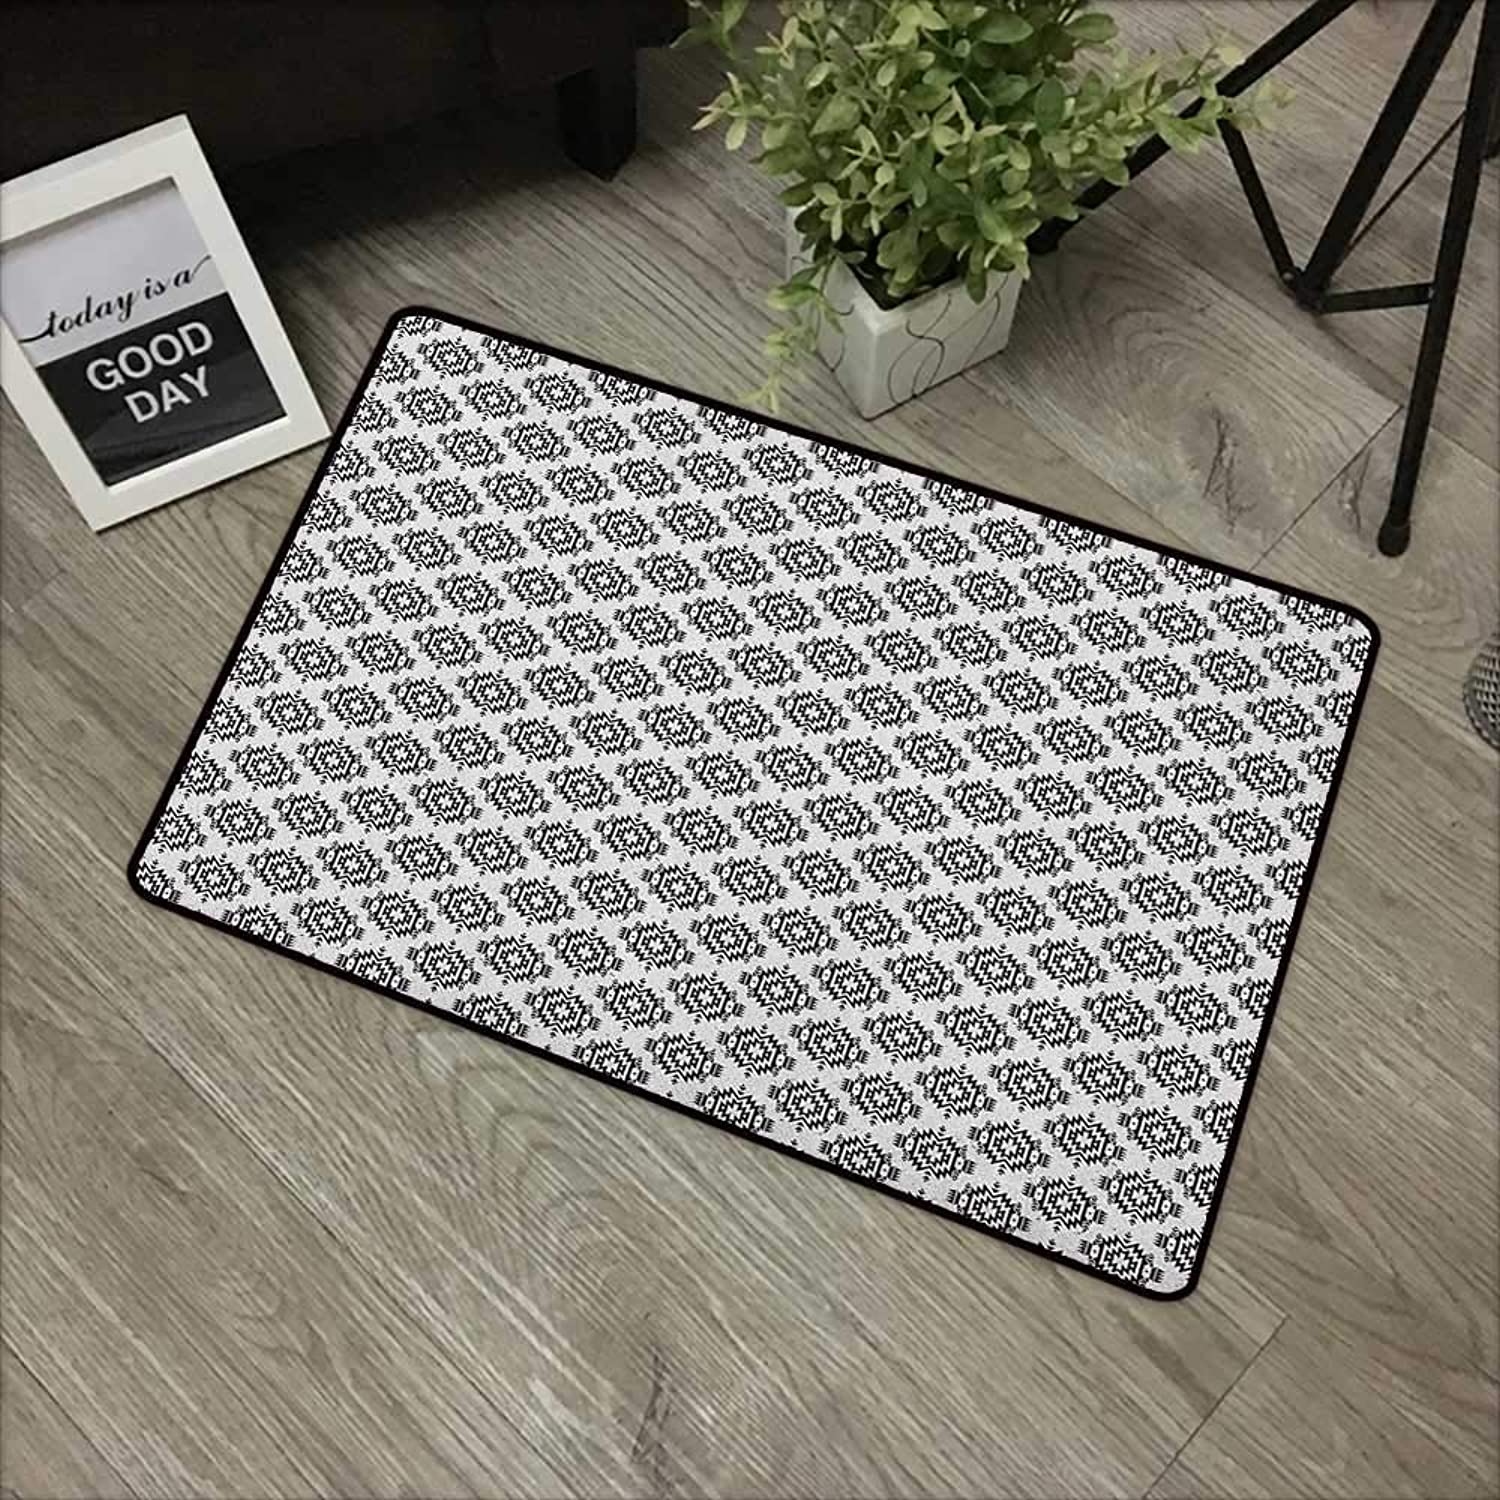 Interior mat W35 x L59 INCH Native American,Grunge Monochrome Motifs with Ancient Cultural Origins Indigenous Abstract, Black White Non-Slip, with Non-Slip Backing,Non-Slip Door Mat Carpet